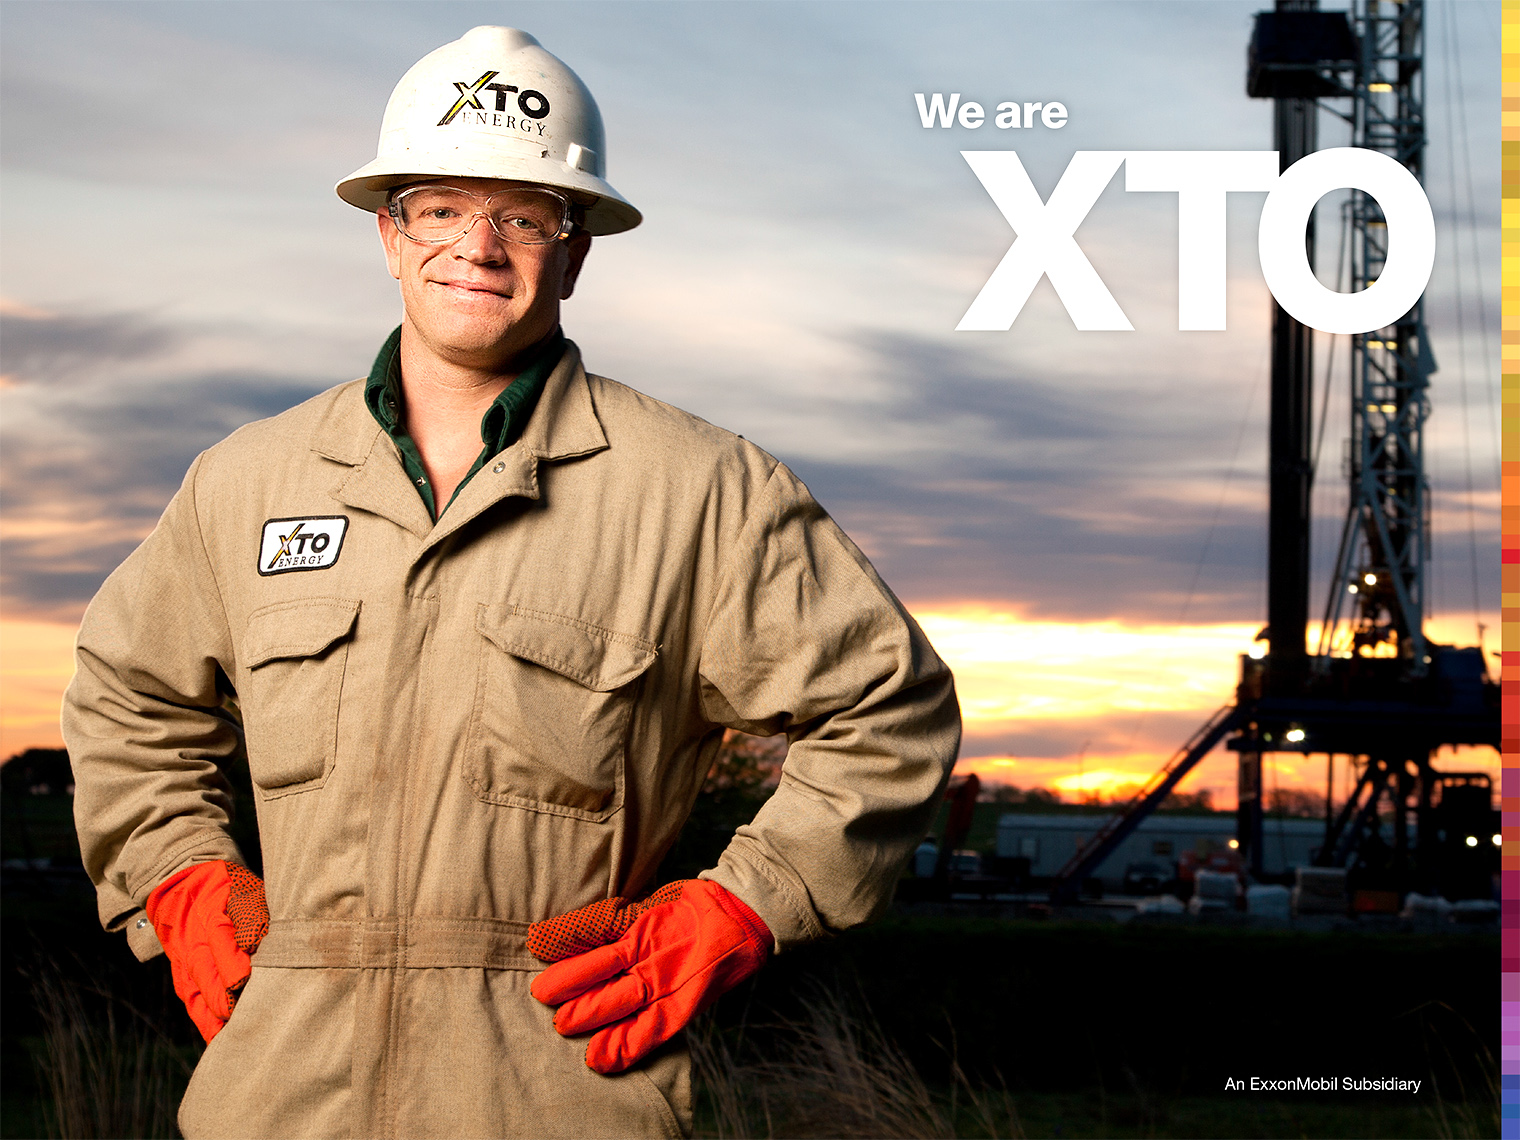 XTO_Oil_Gas_Photographer